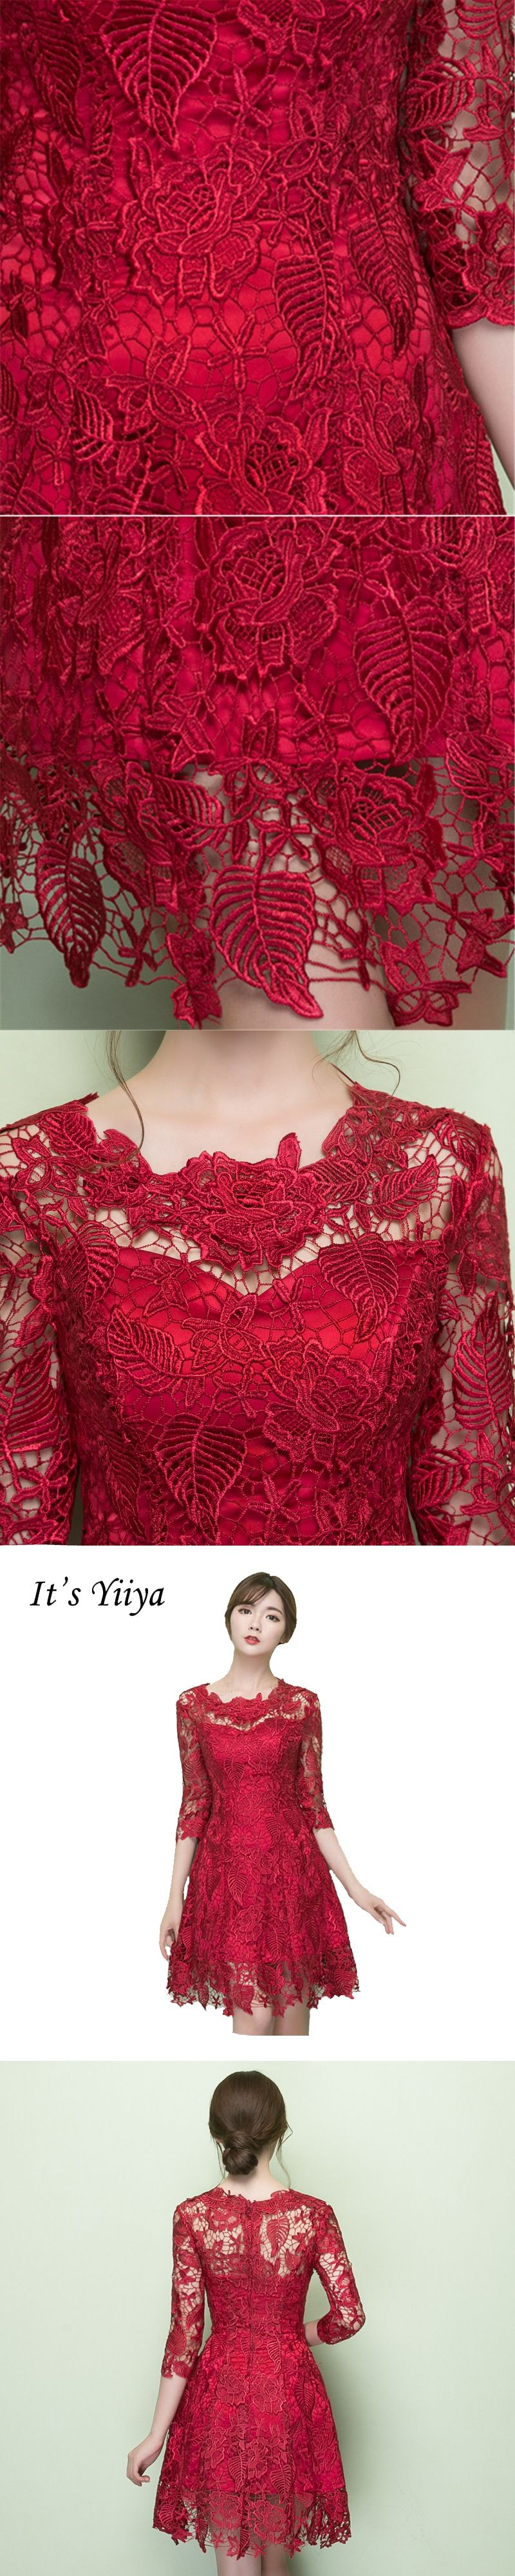 Itus yiiya red illusion oneck party gown prom gowns lace up